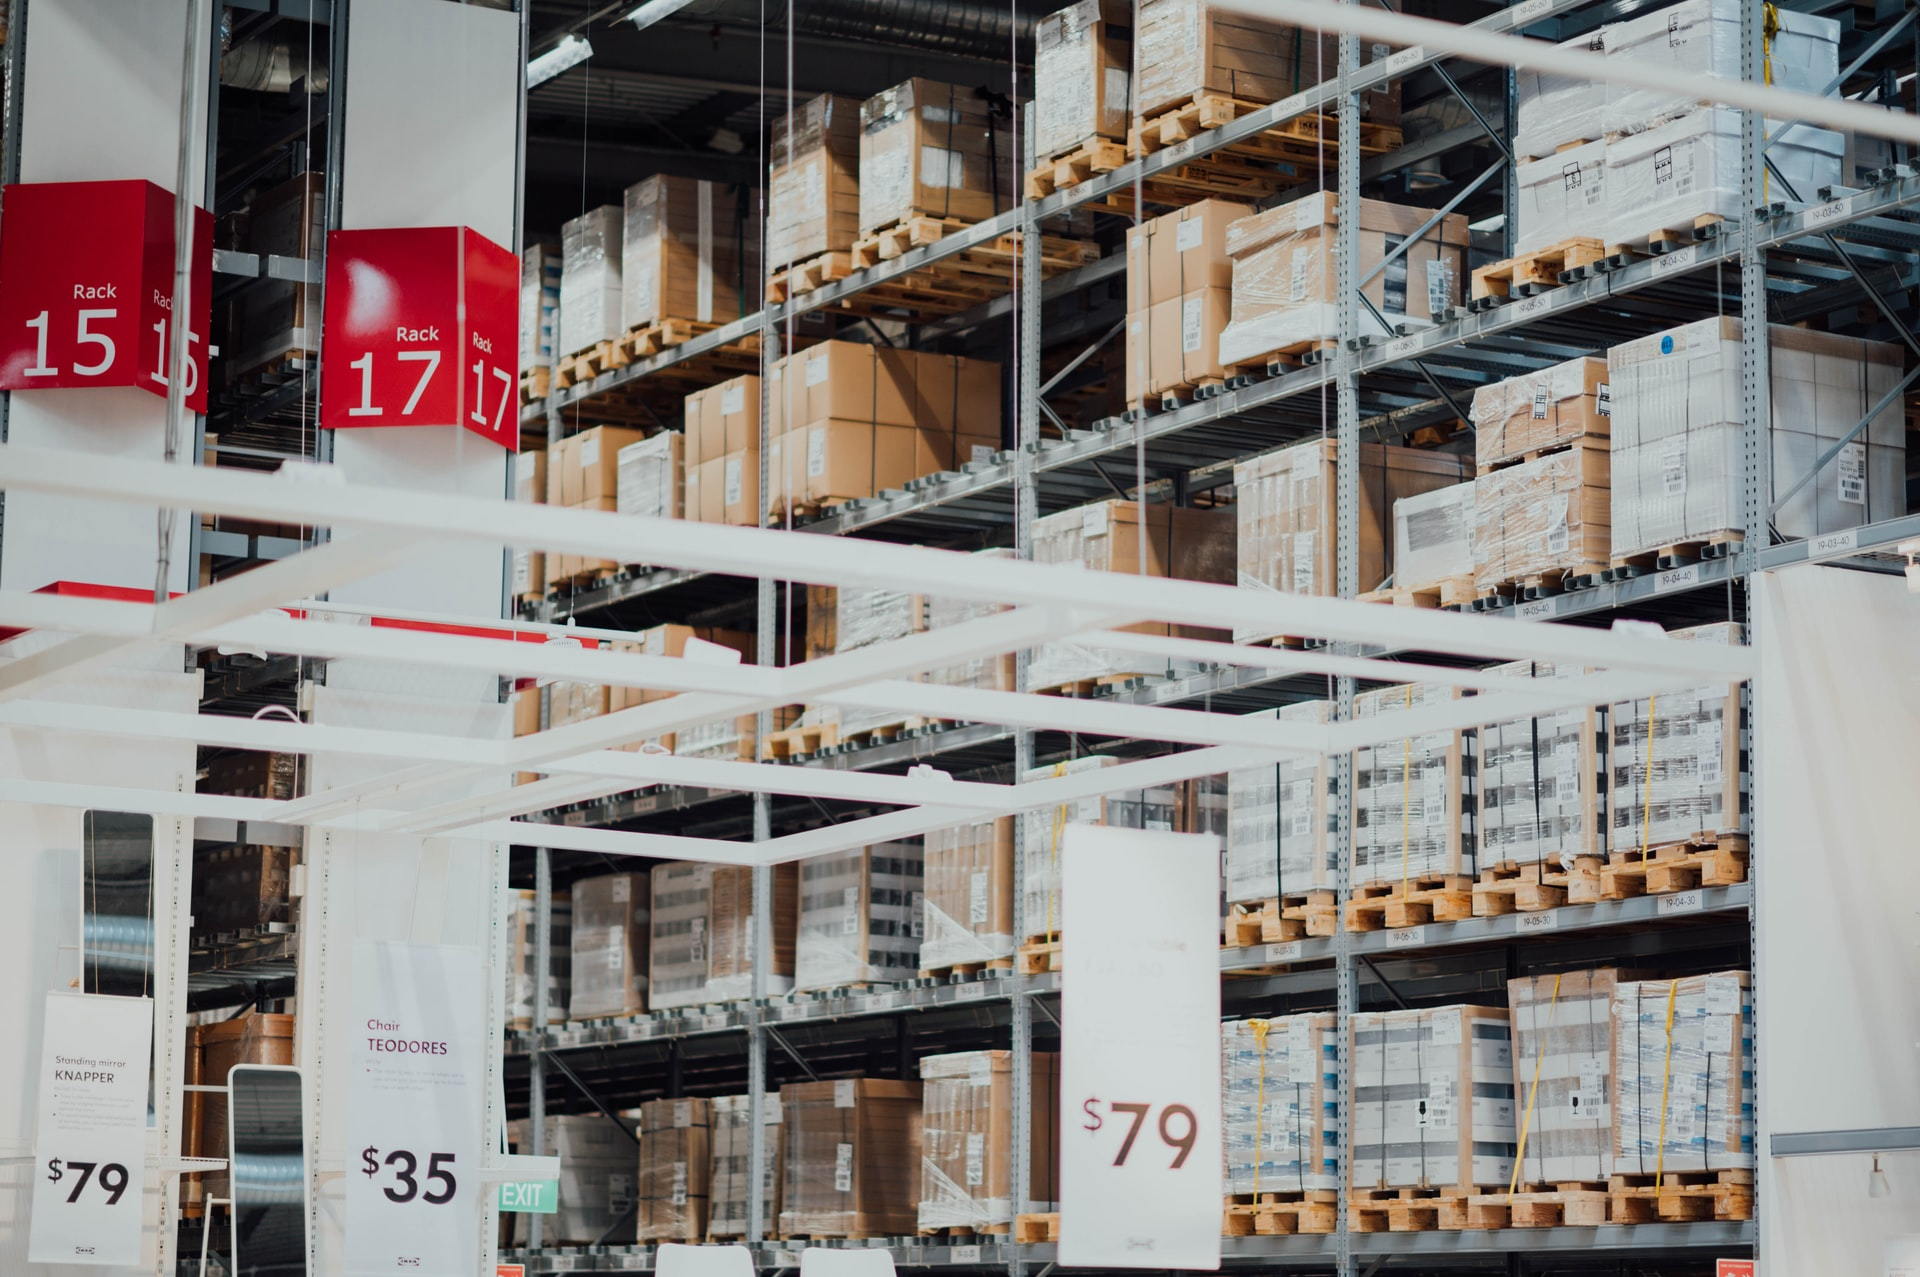 Arizona warehouse leasing is a serious undertaking. Both landlords and tenants are subject to various obligations and must abide by the terms in their lease agreements.